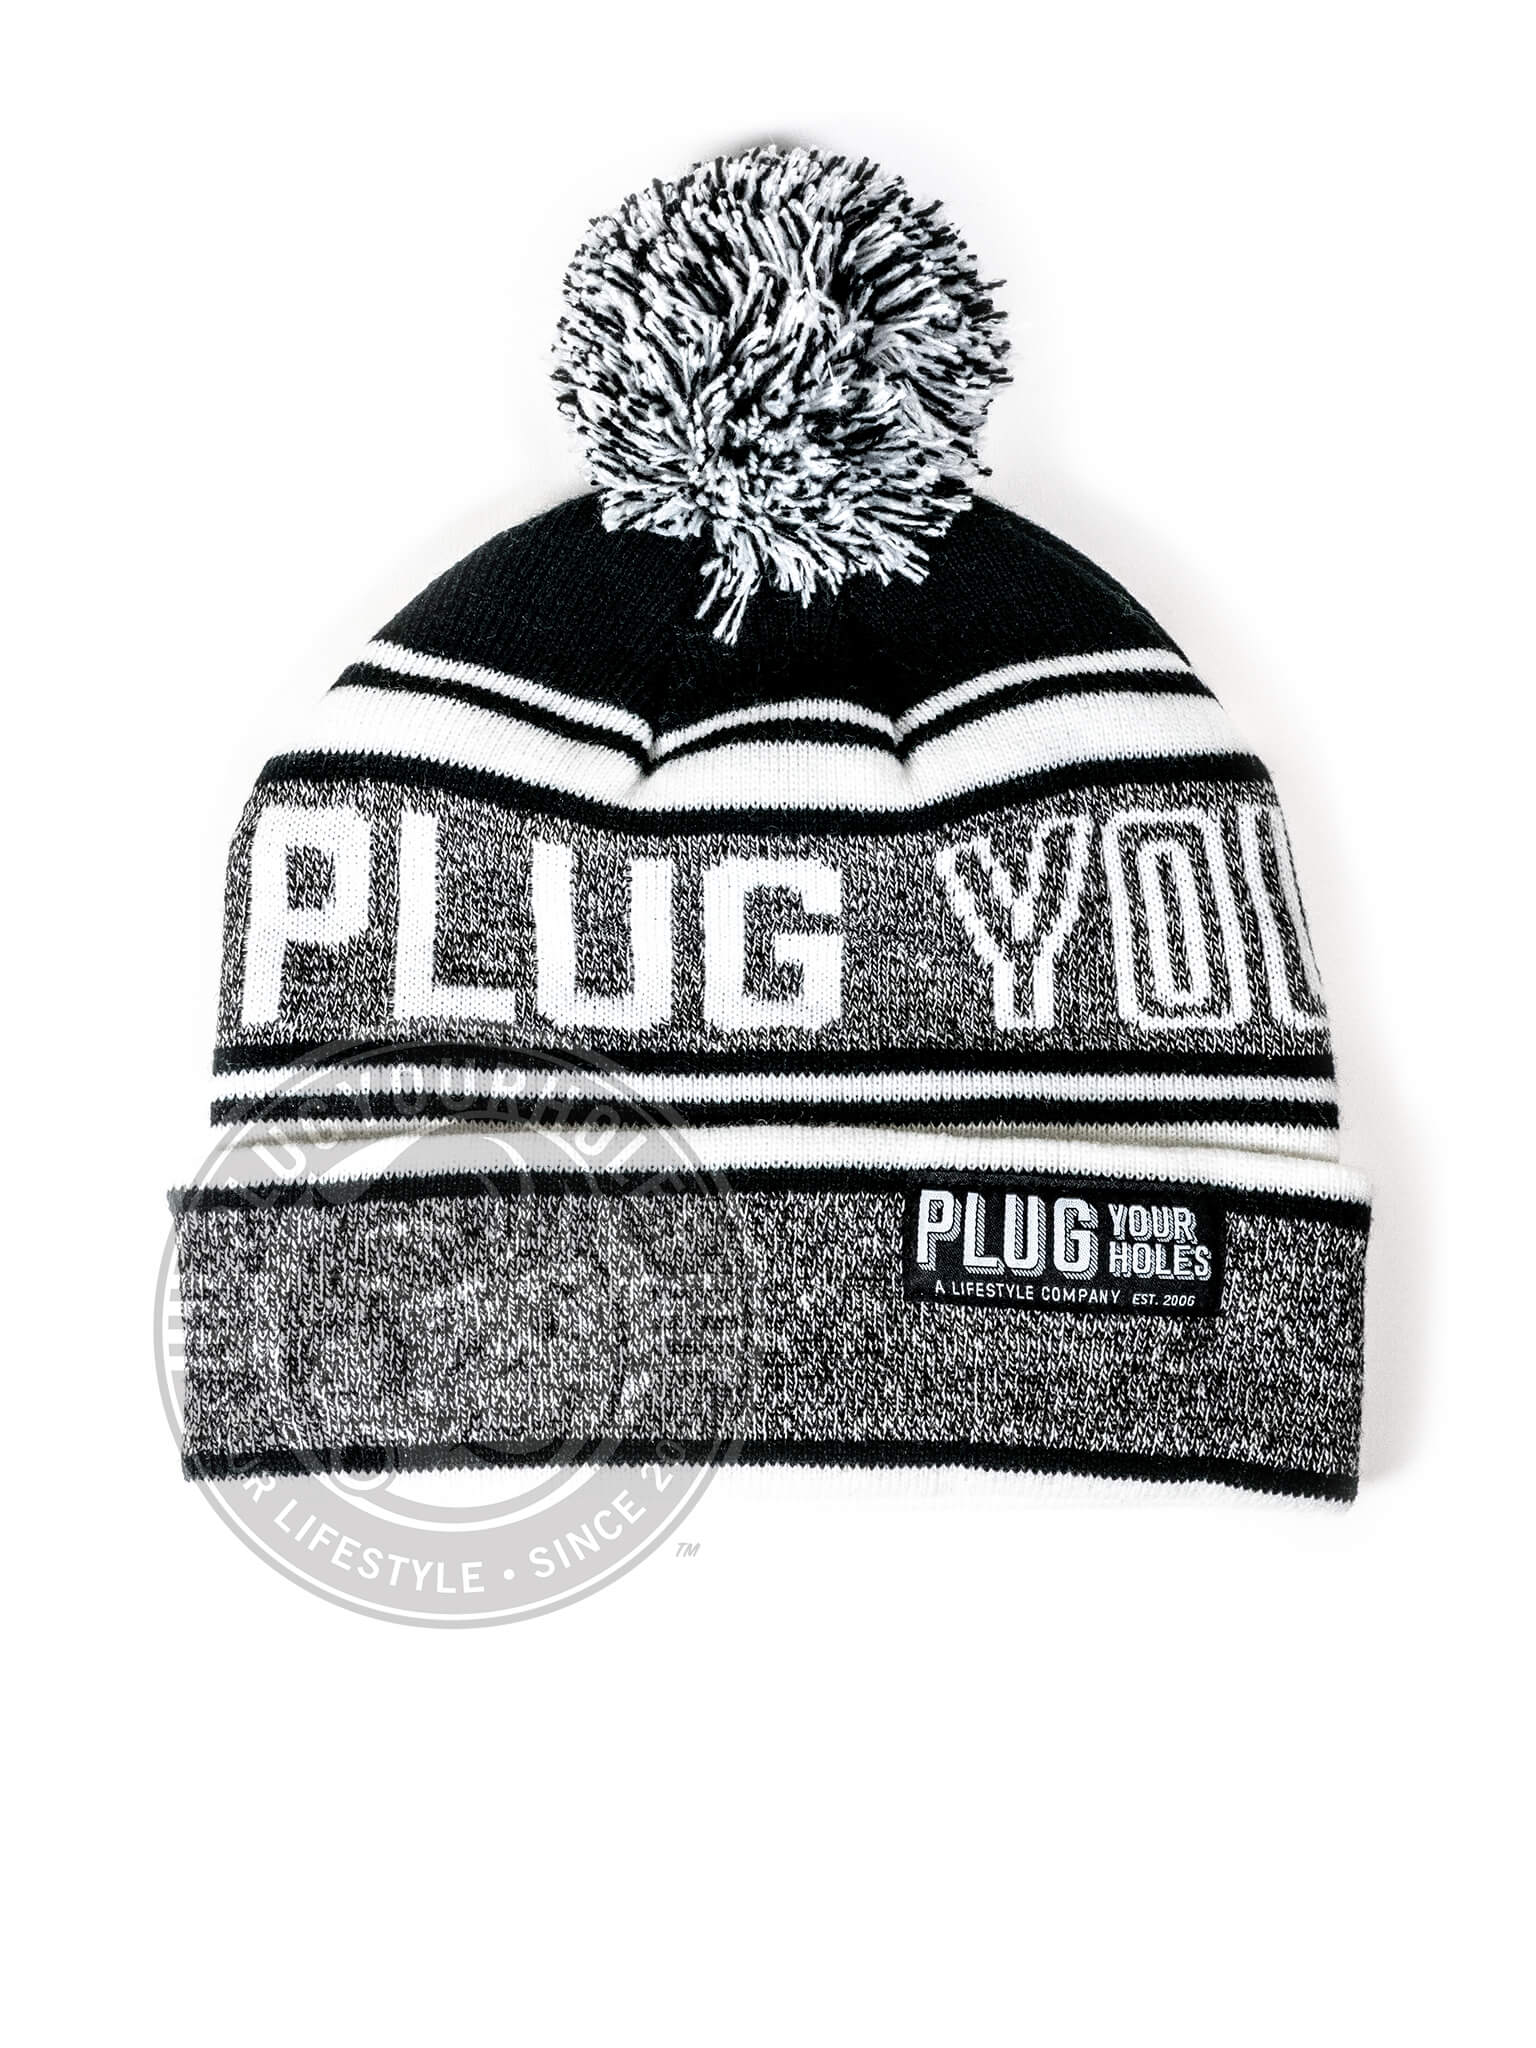 Plug Your Holes Grey & Black Pom Knit Beanie